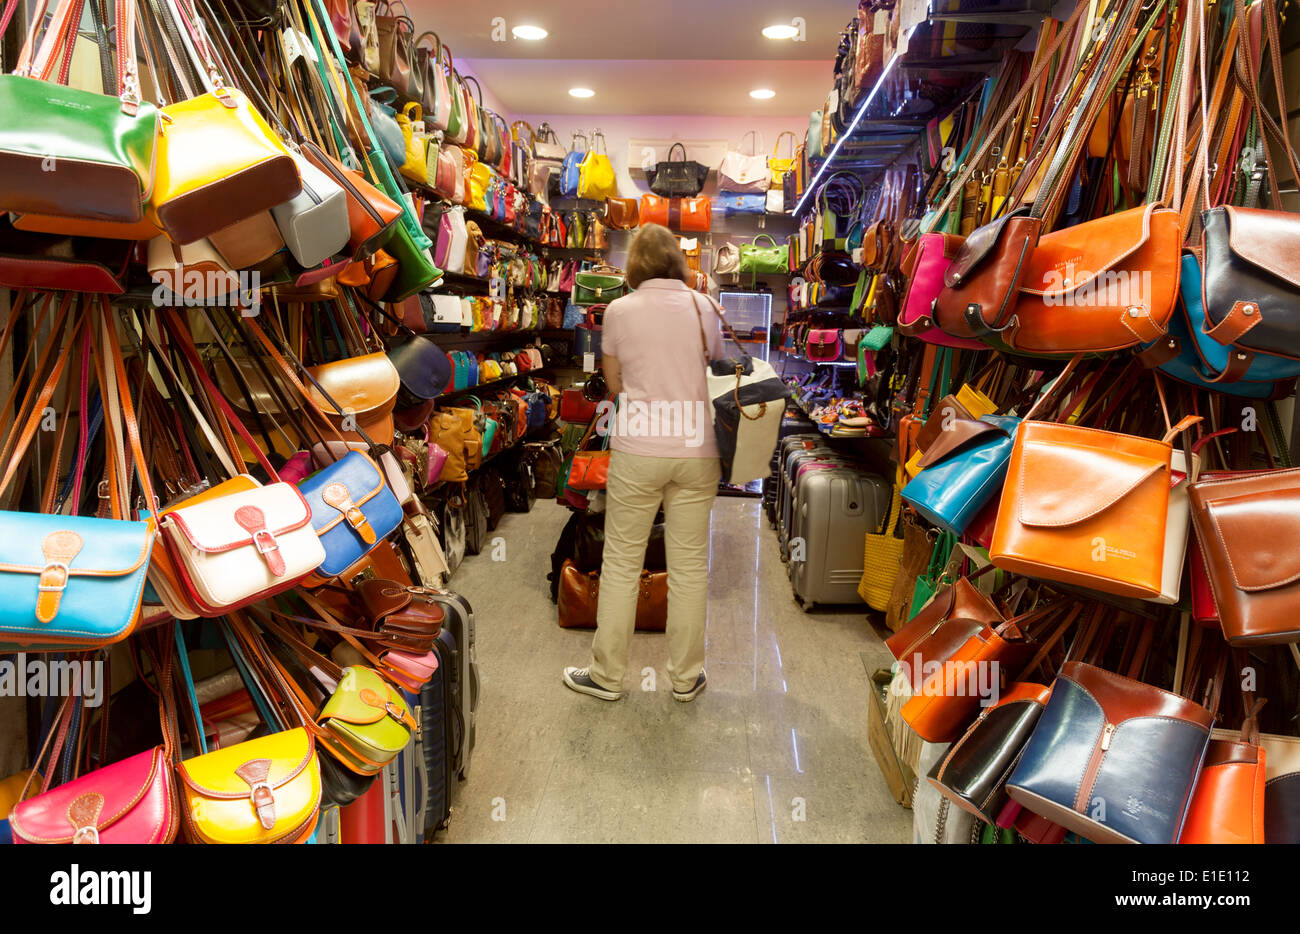 People shopping for handbags in a leather goods store shop, Rome Italy Europe - Stock Image